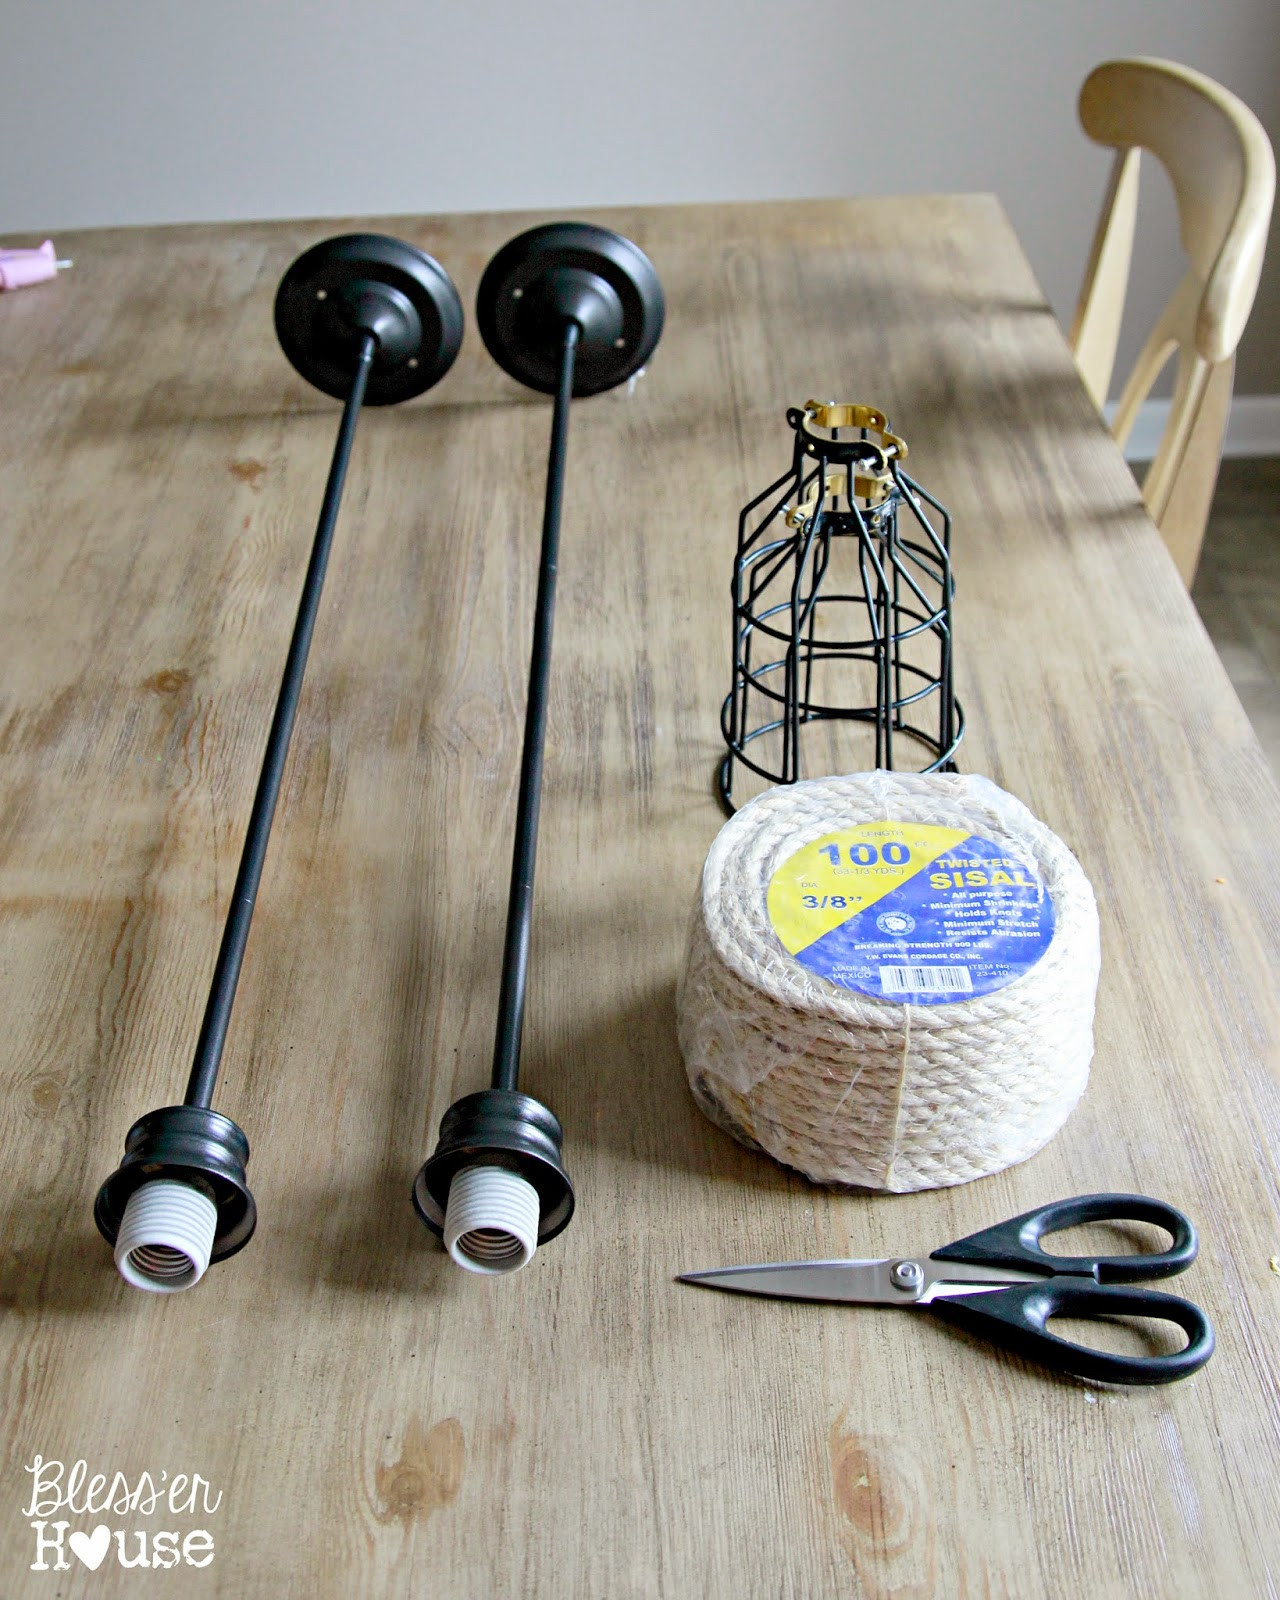 Best ideas about DIY Hanging Lamp . Save or Pin DIY Industrial Pendant Light for Under $10 Bless er House Now.